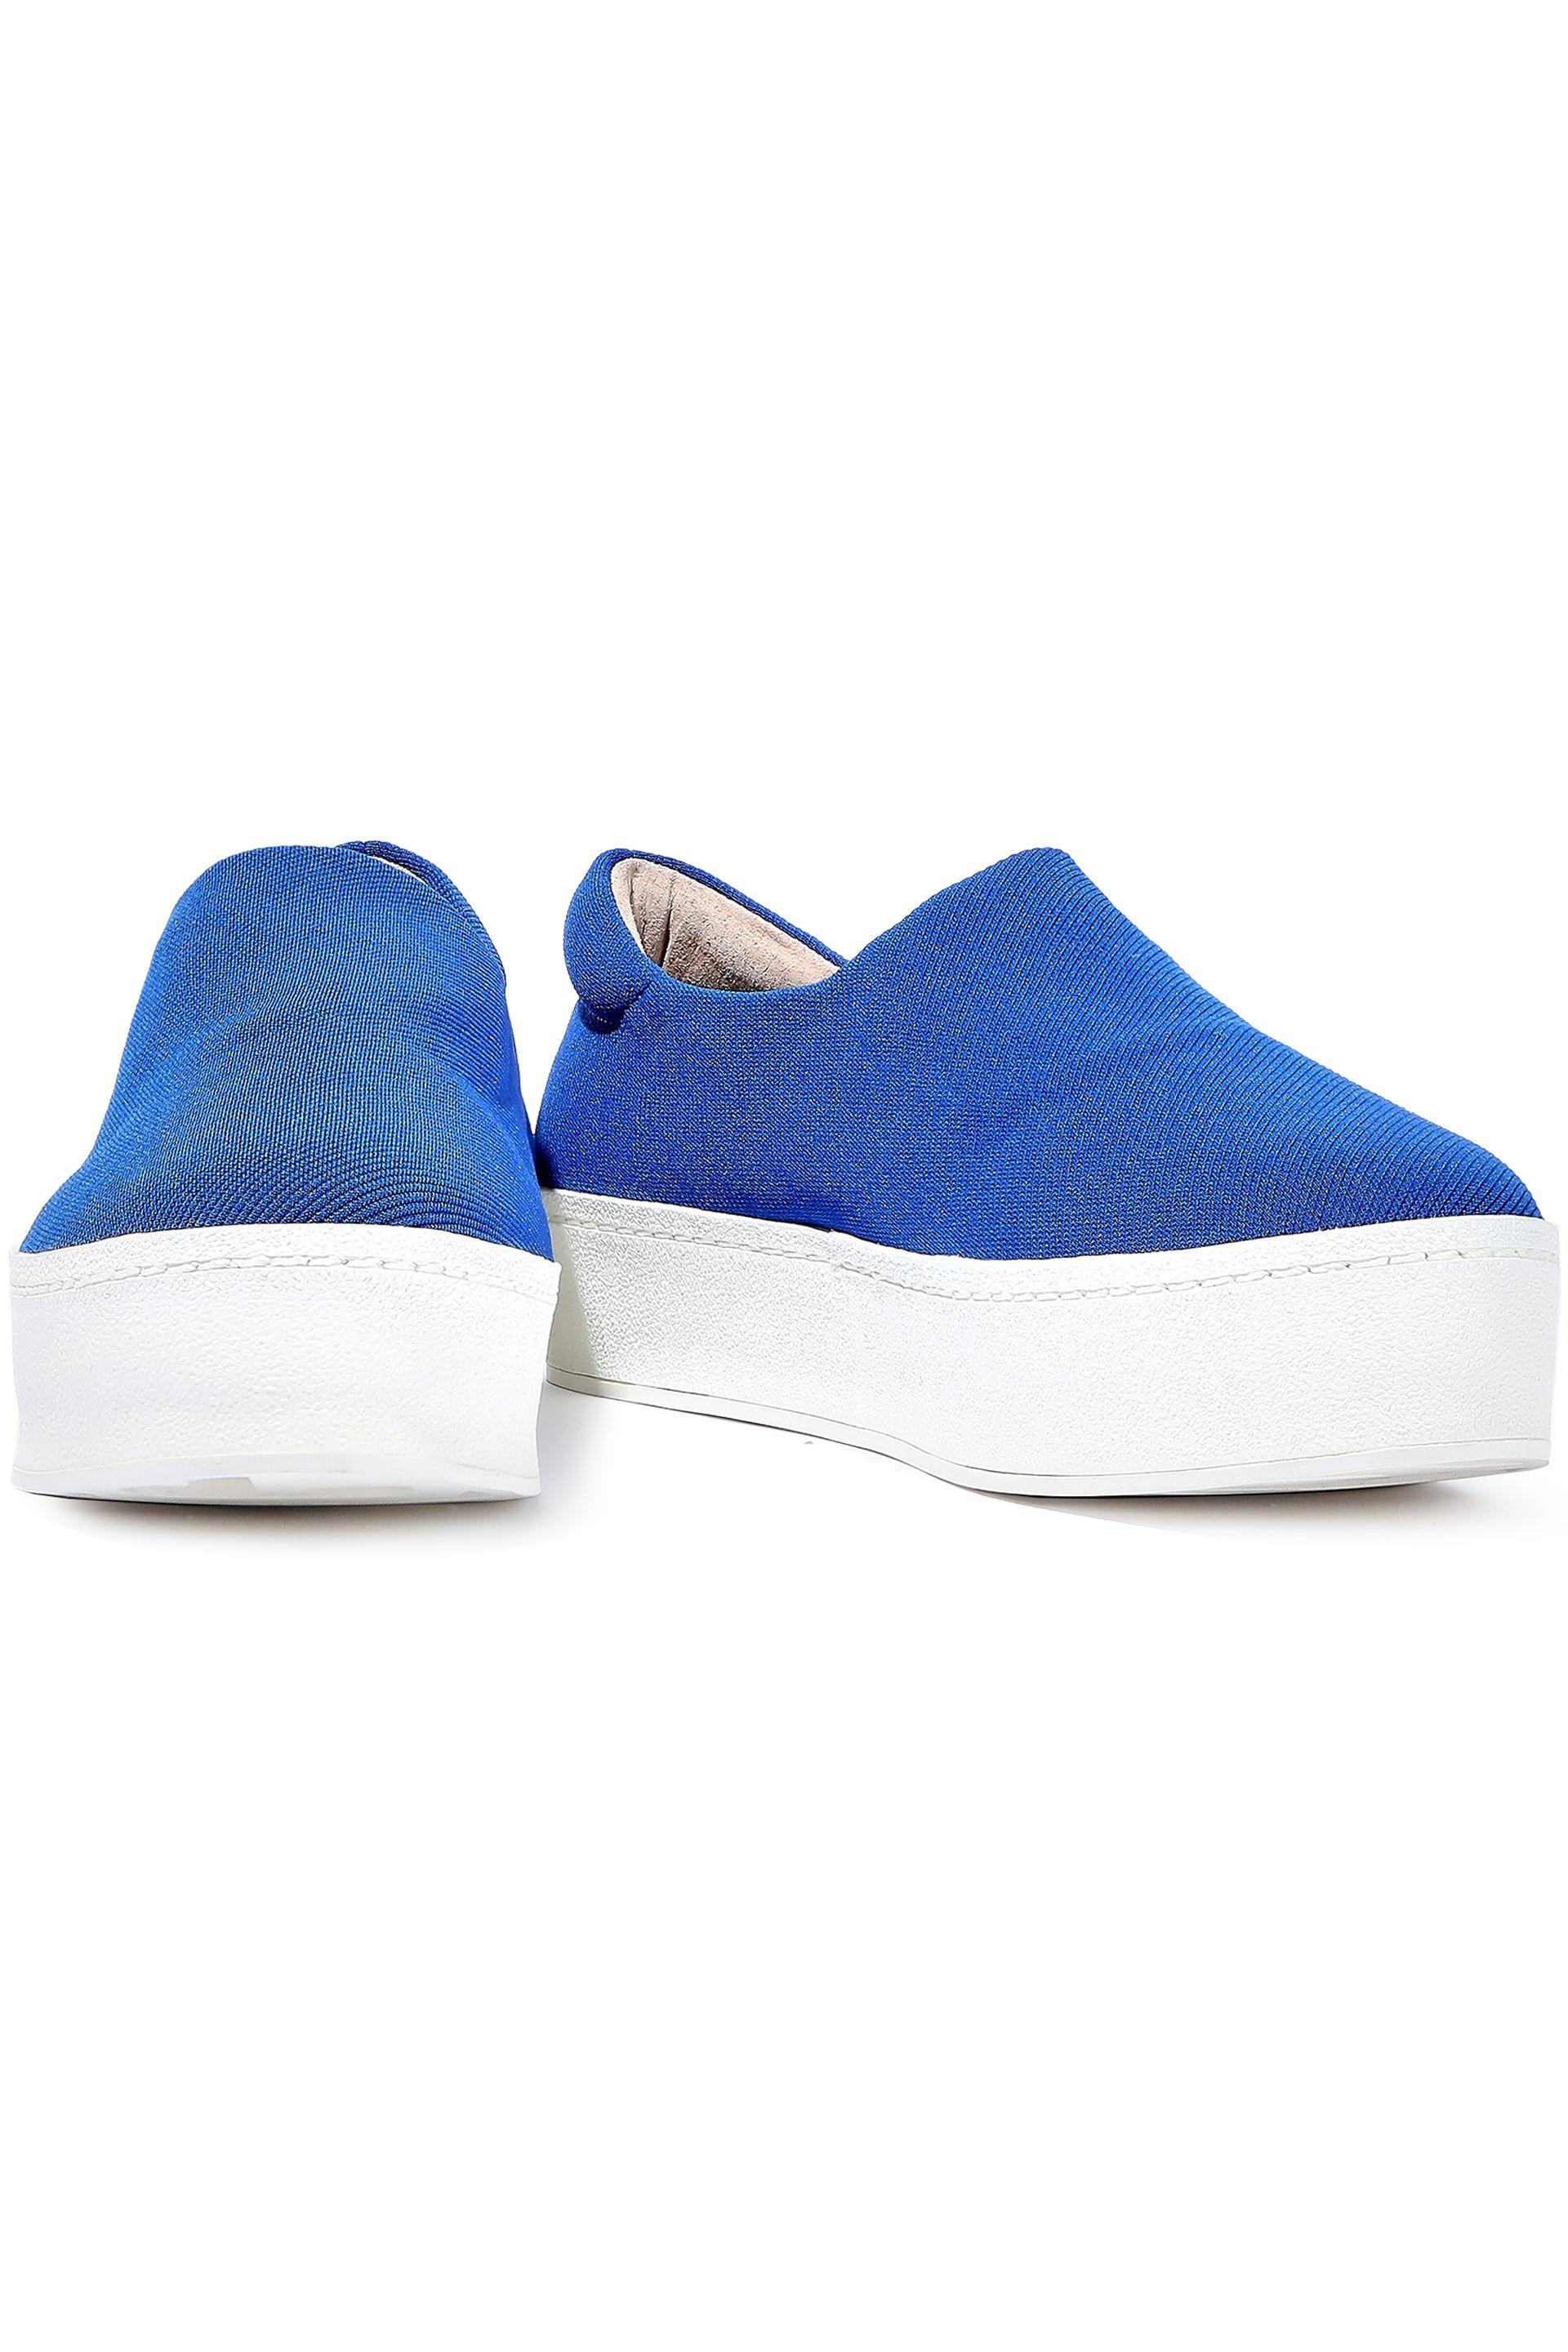 88aef1776003 Opening Ceremony - Blue Woman Cici Twill Platform Slip-on Sneakers Azure -  Lyst. View fullscreen